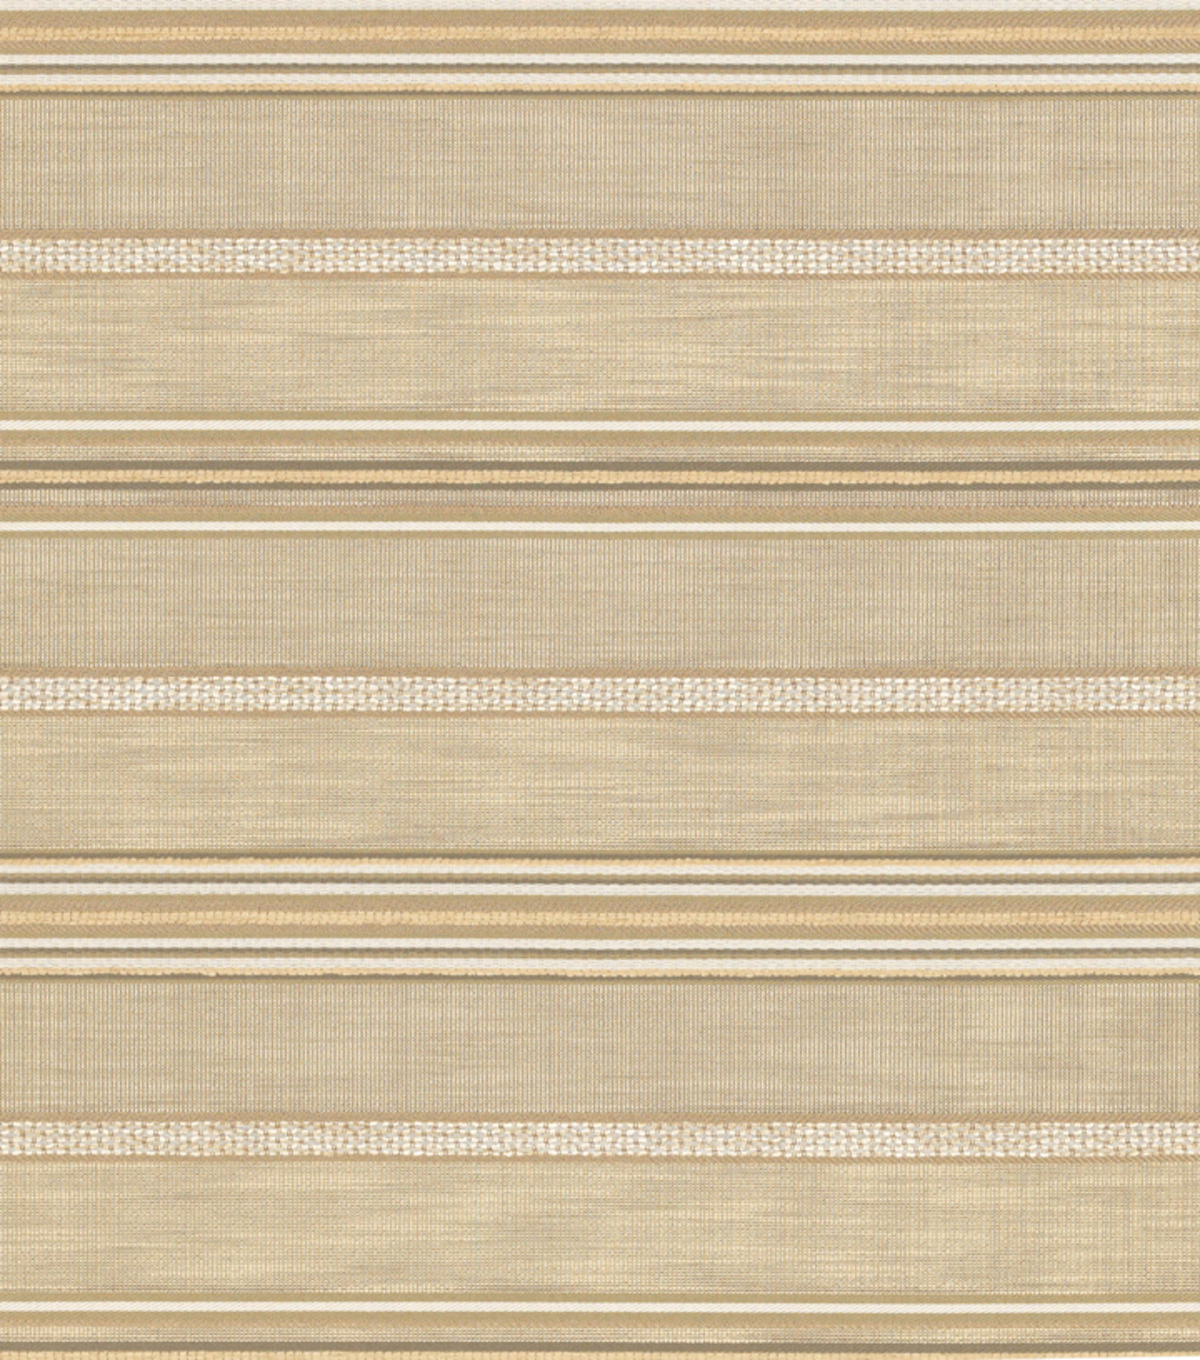 Home Decor 8\u0022x8\u0022 Fabric Swatch-Pamlico Straw